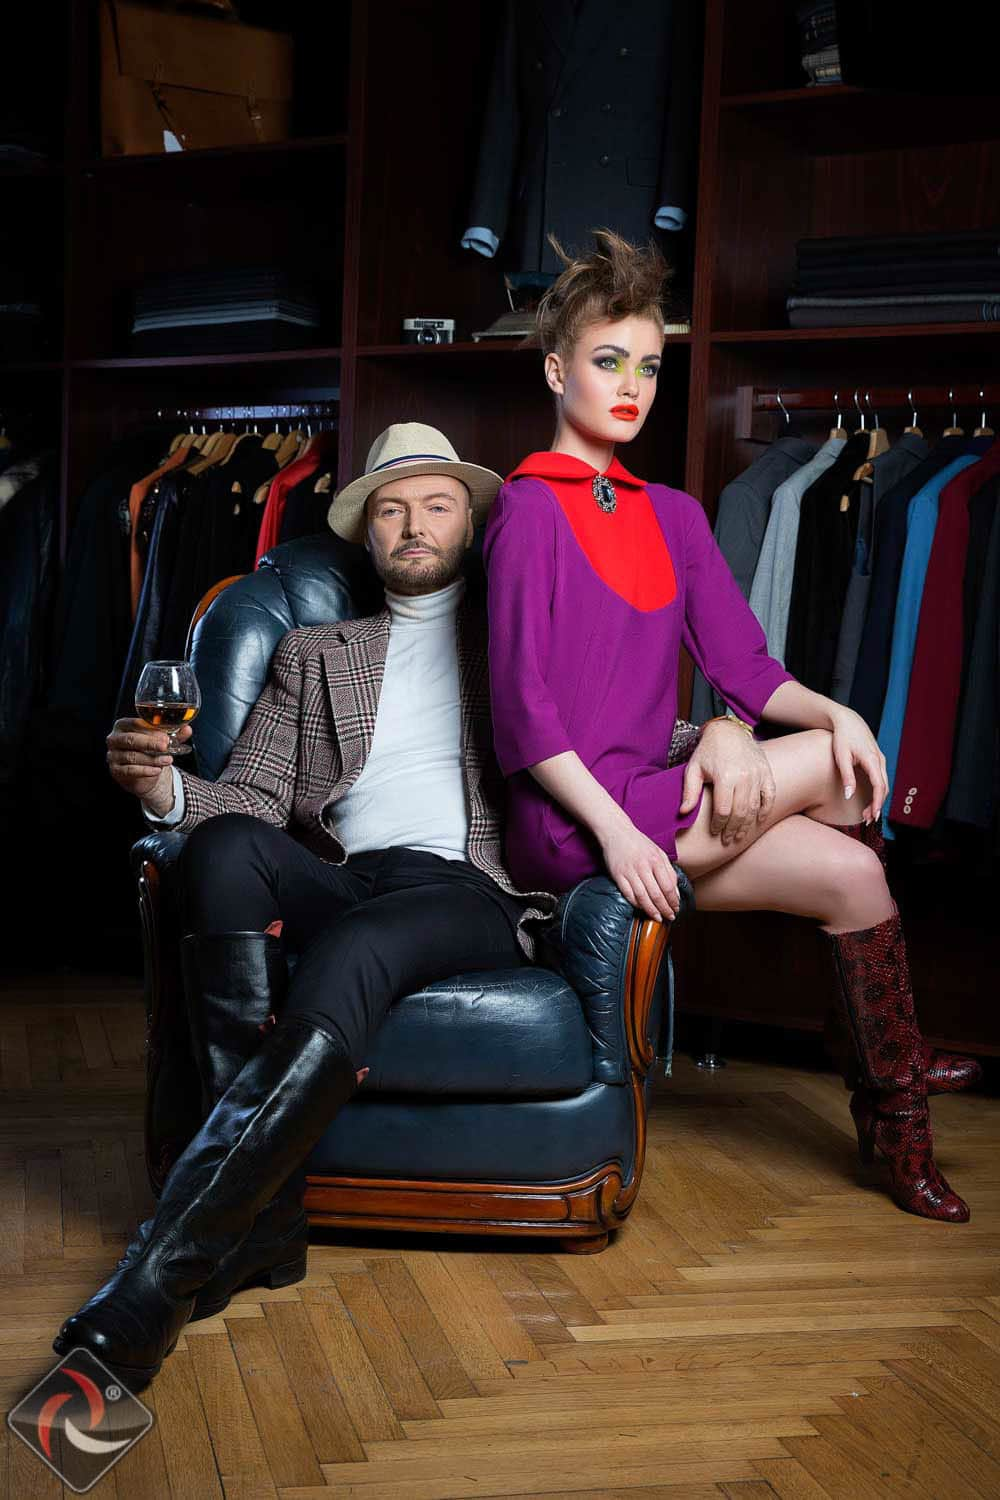 Luxury Couple - Modeling Photoshoot